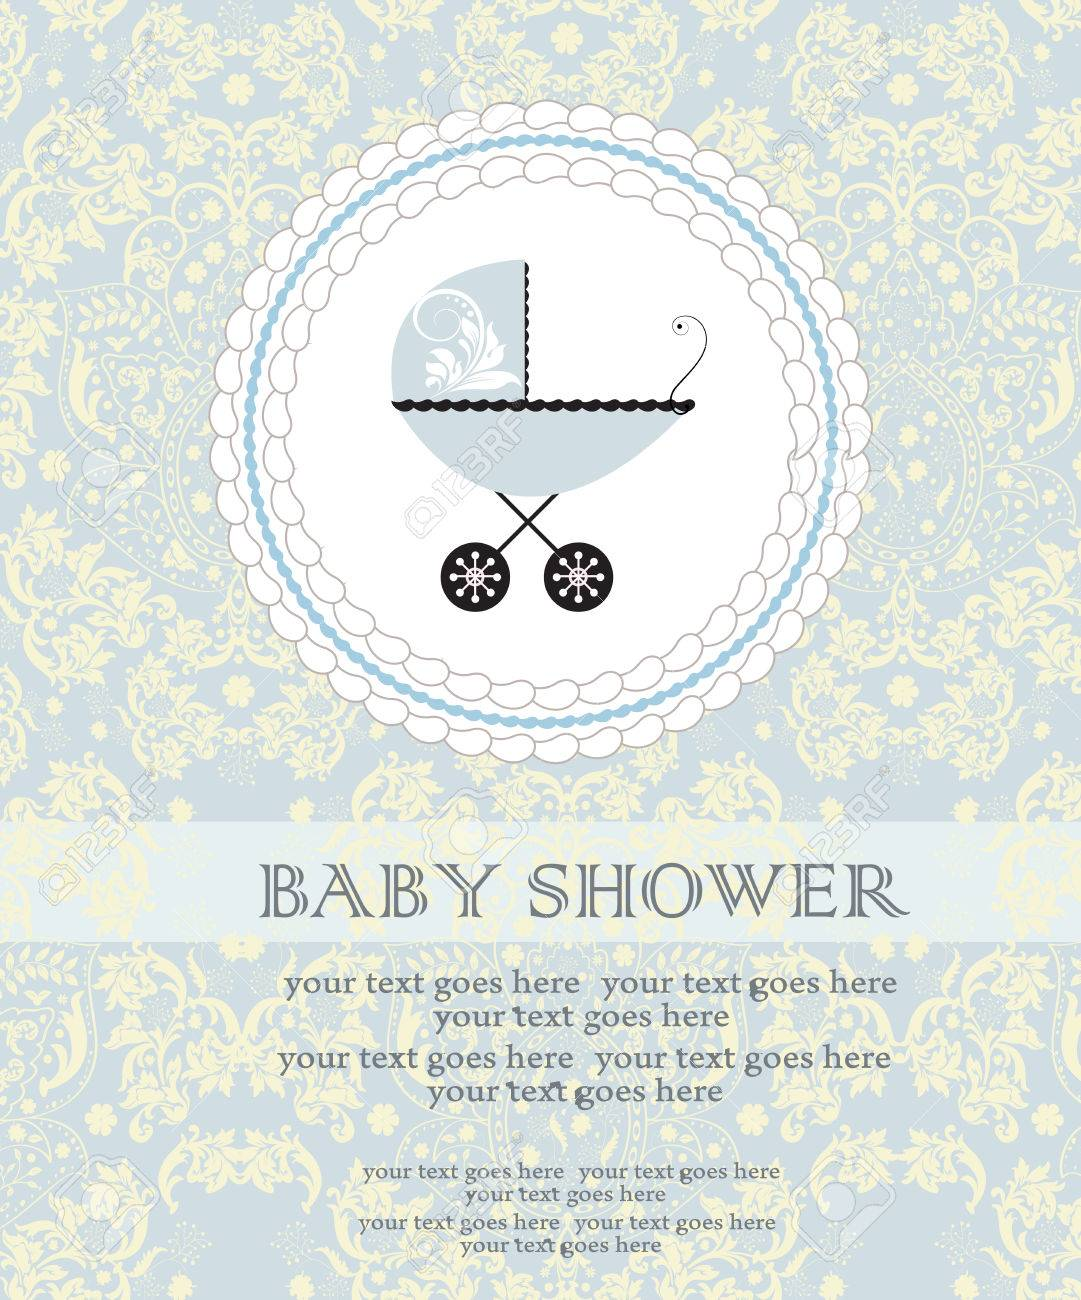 Vintage Baby Shower Invitation Card With Ornate Elegant Abstract ...